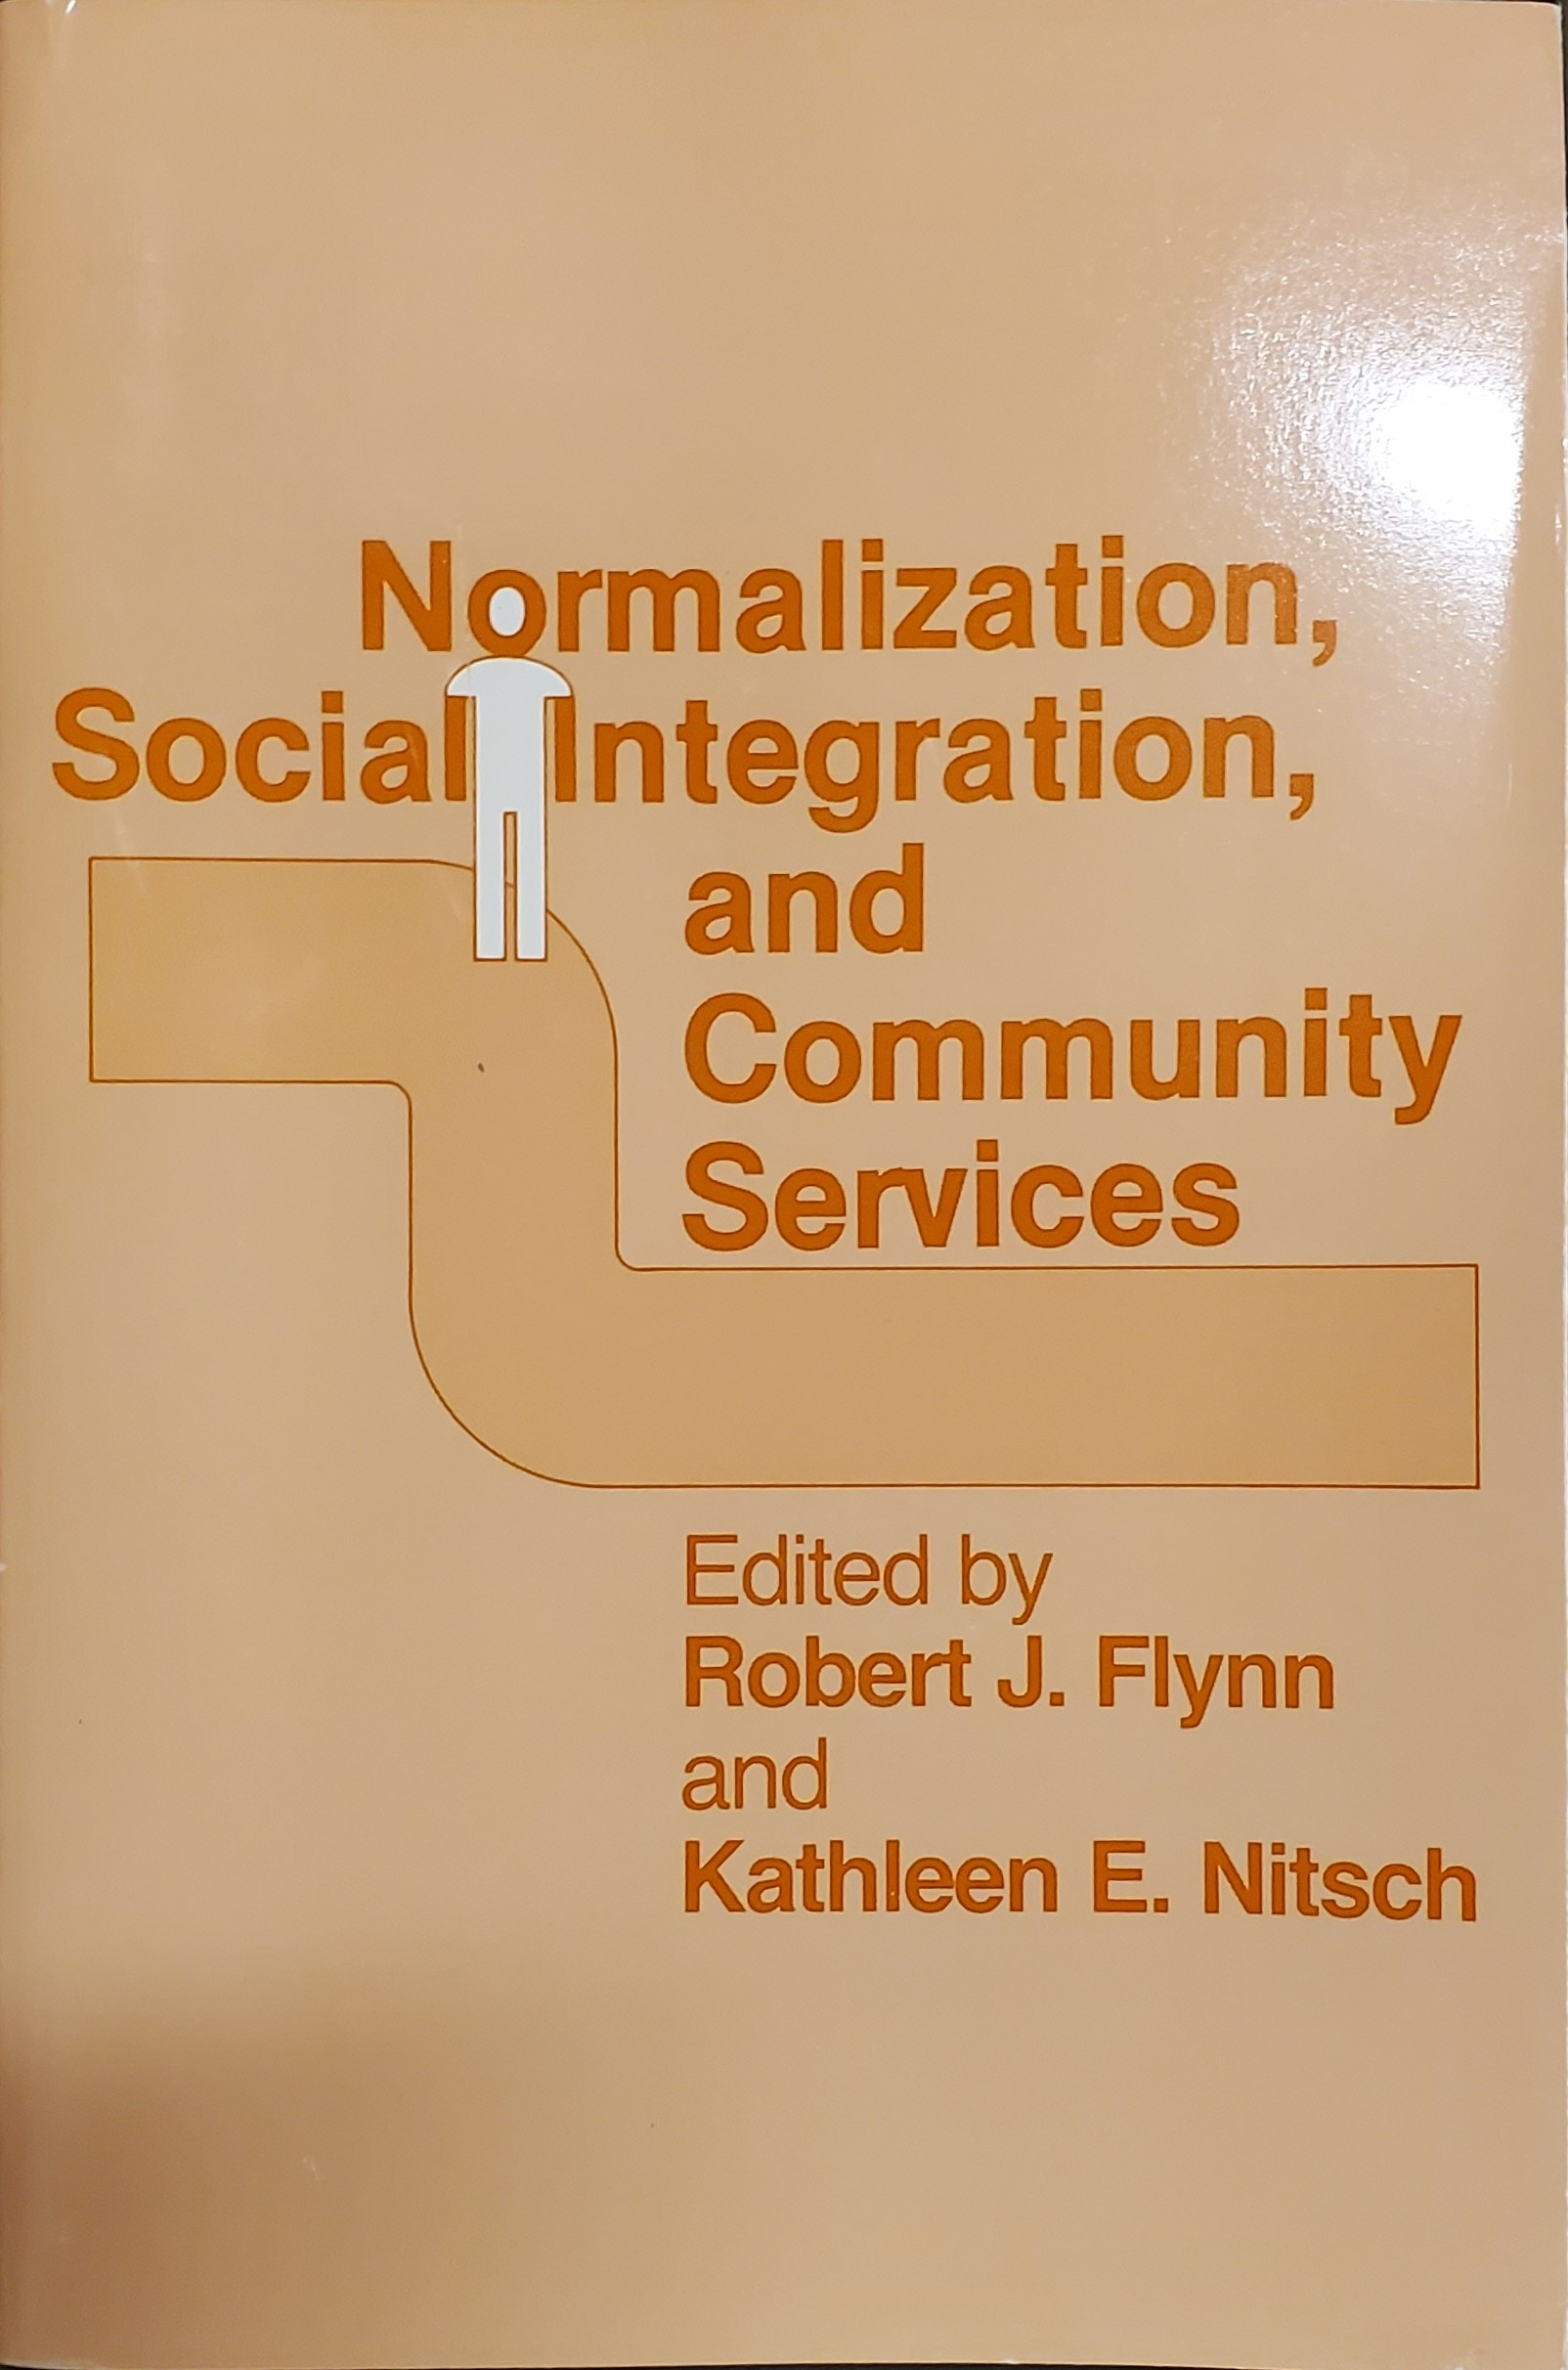 Normalization, Social Integration, and Community Services